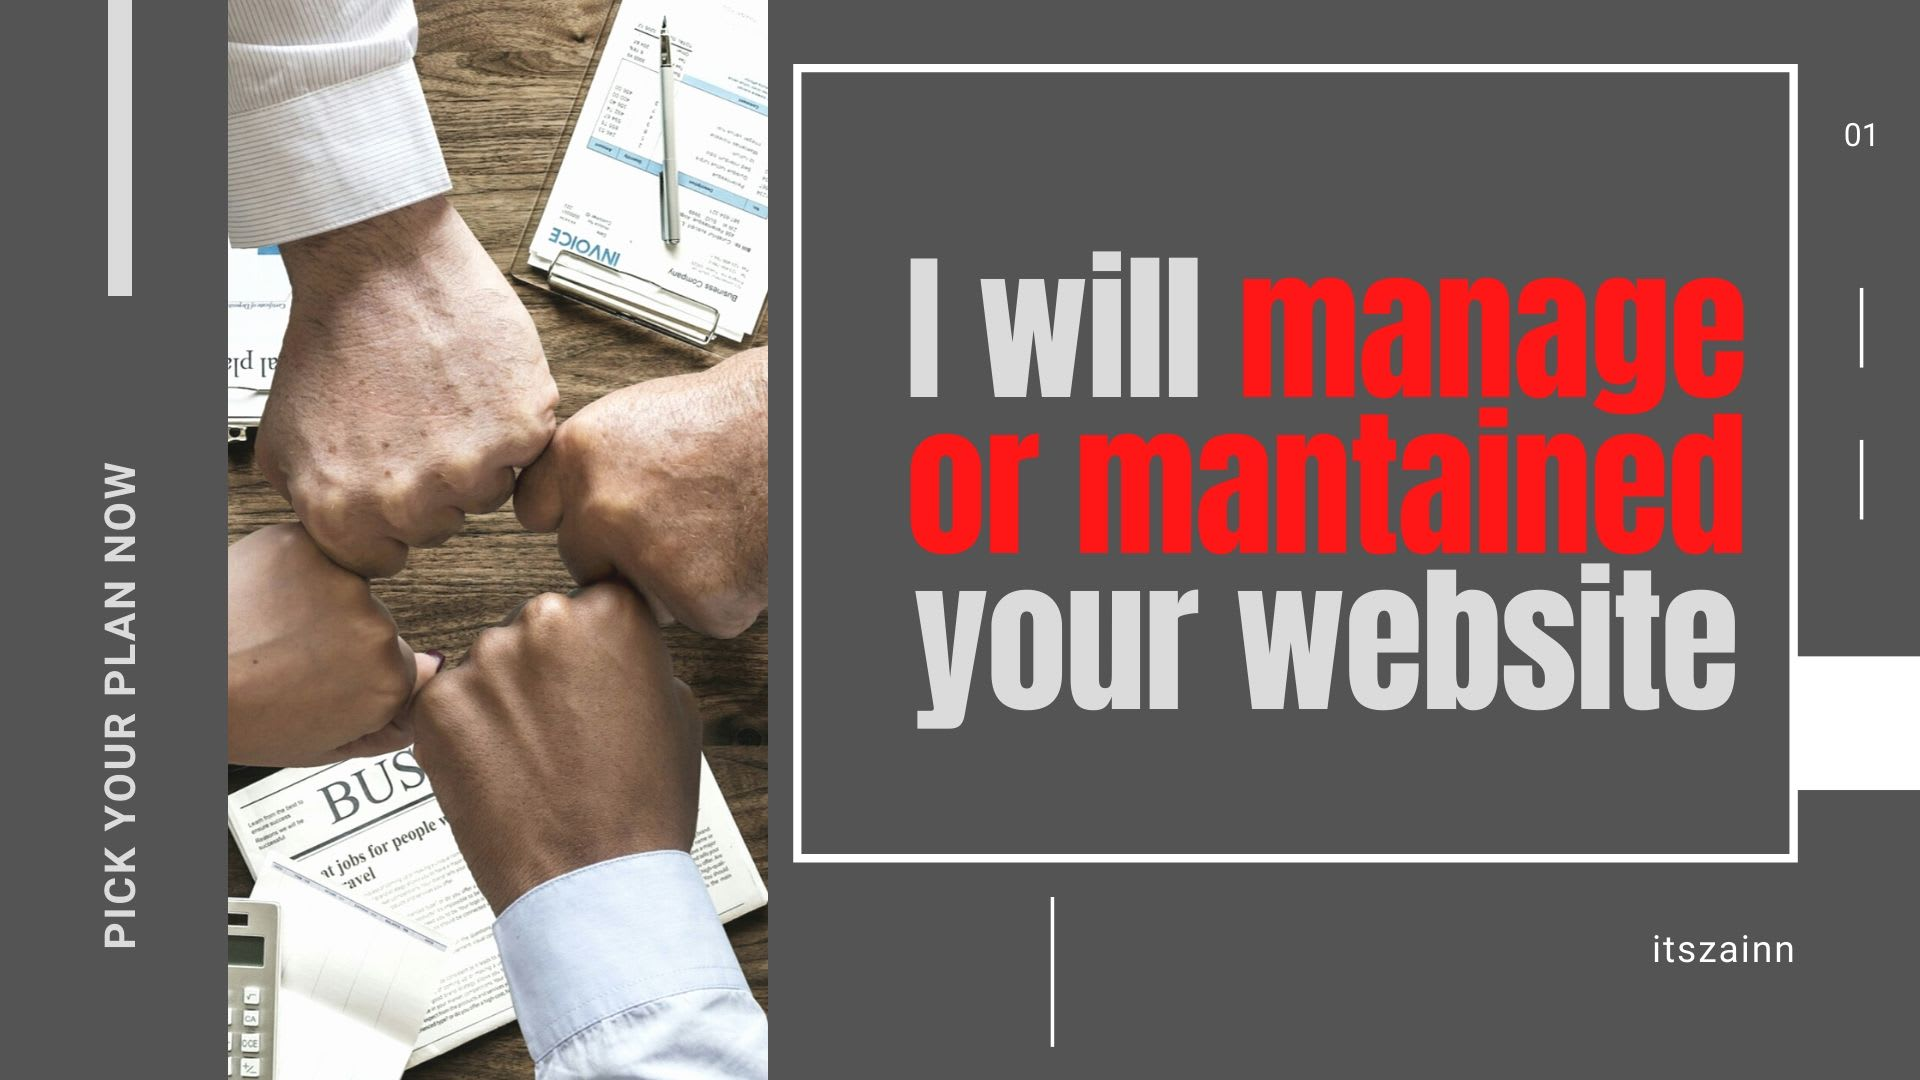 I will well-managed your website and make it well-maintained website